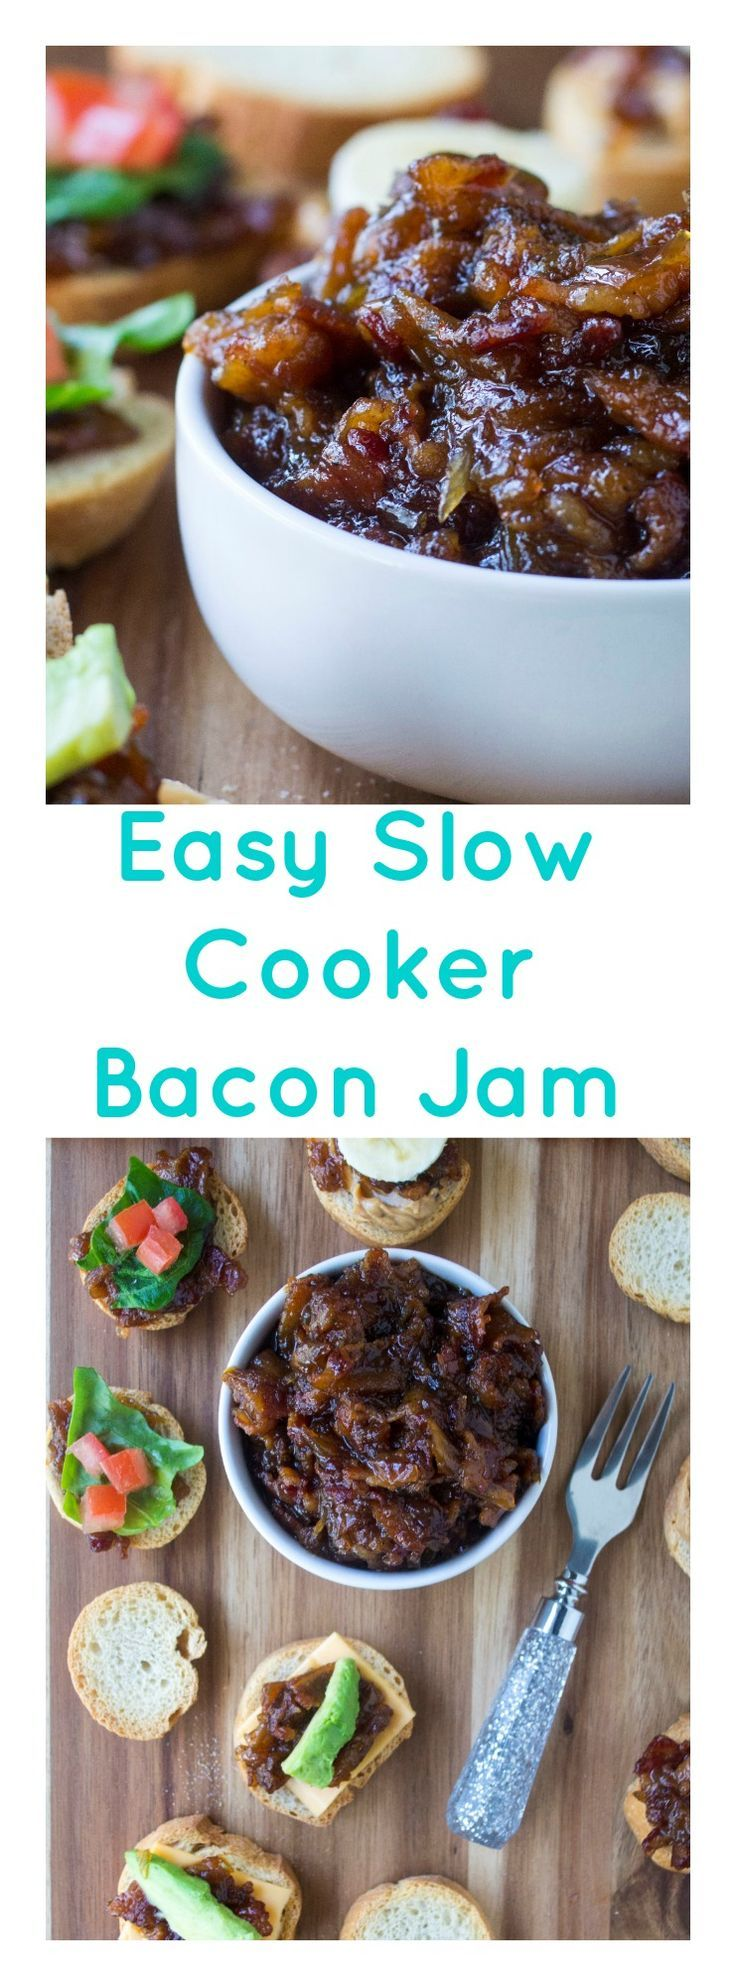 Bacon Jam is the perfect salty, sweet, savory condiment spread to add to appetizers, sandwiches and snacks alike. Made with coffee, bacon, brown sugar and maple syrup, this rich and amazing Bacon Jam recipe will change your life! | Pack Momma | https://www.packmomma.com #baconjam #bacon #gamedayfood #homemadejam #savory #baconappetizer #partyfood via @thepackmomma